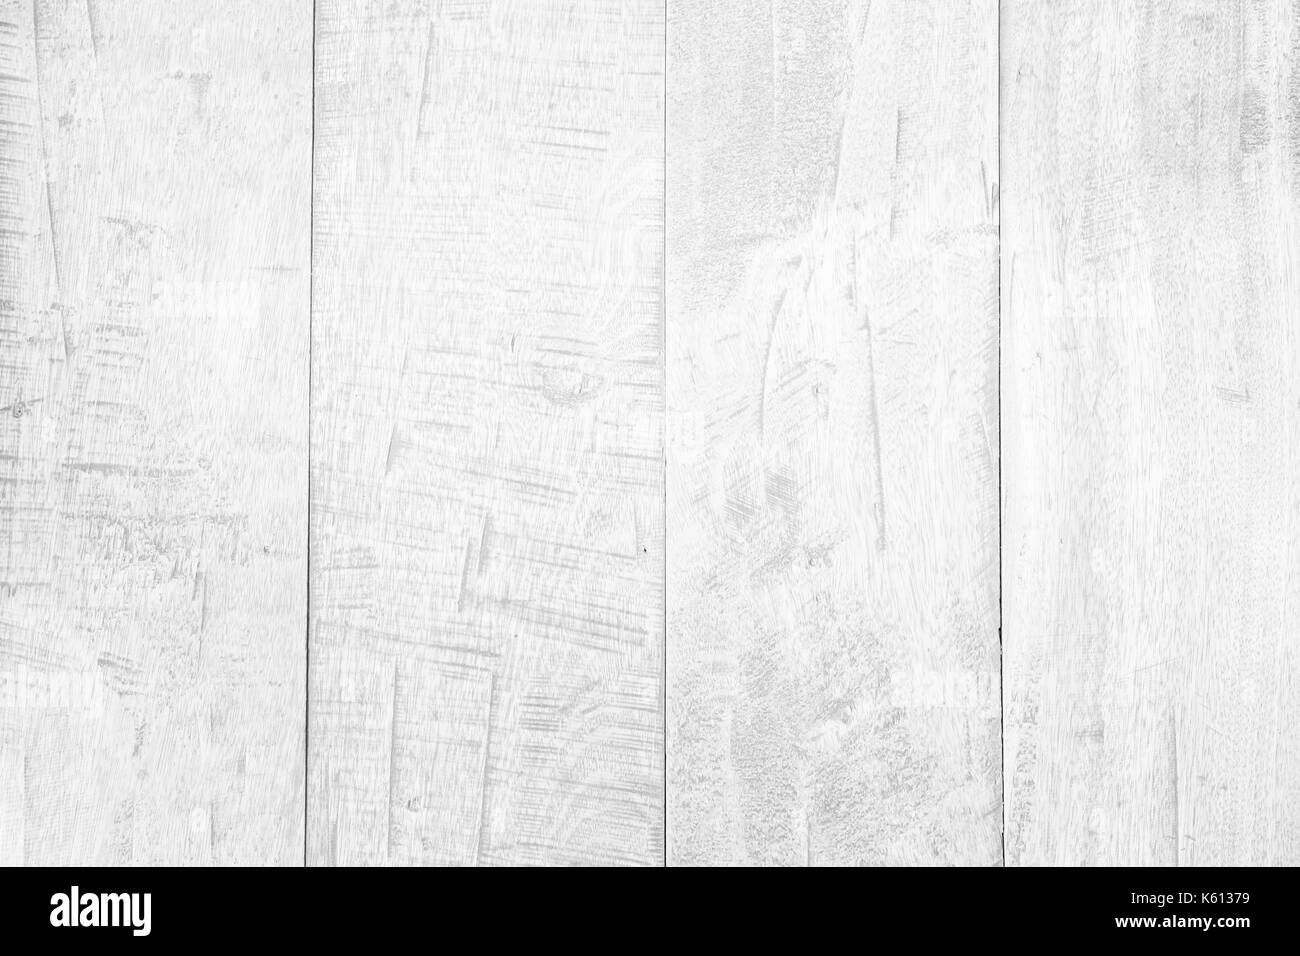 Abstract rustic surface white wood table texture background. Close up of rustic wall made of white wood table planks texture. Rustic white wood table  - Stock Image